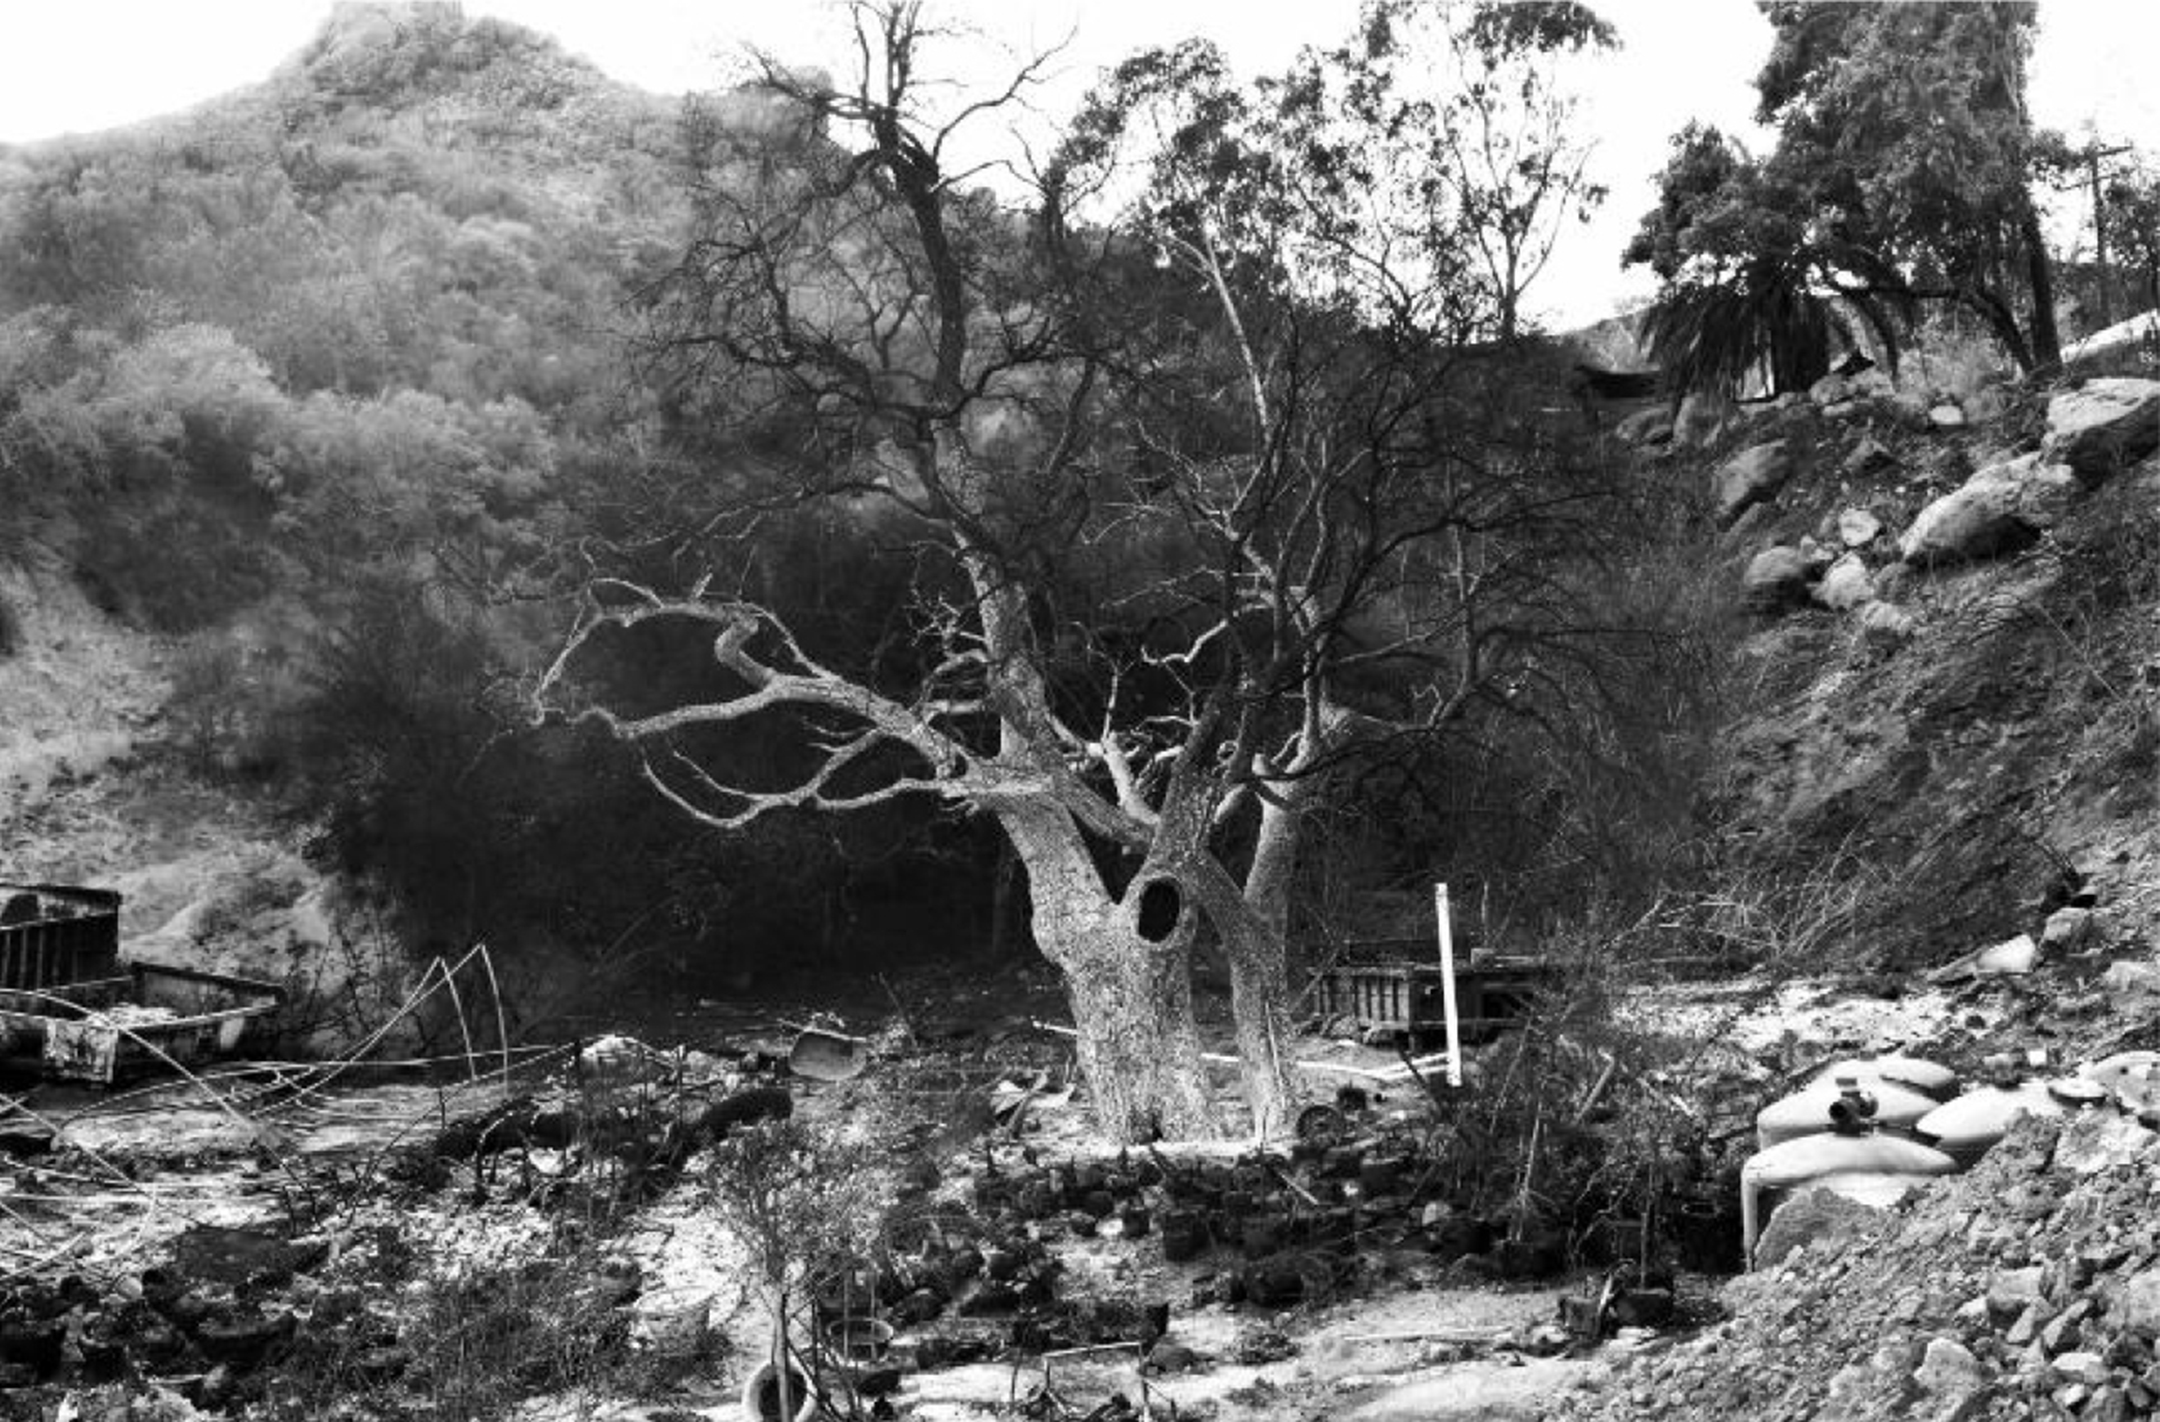 black and white photograph of a burned landscape with a charred tree at the center of the frame